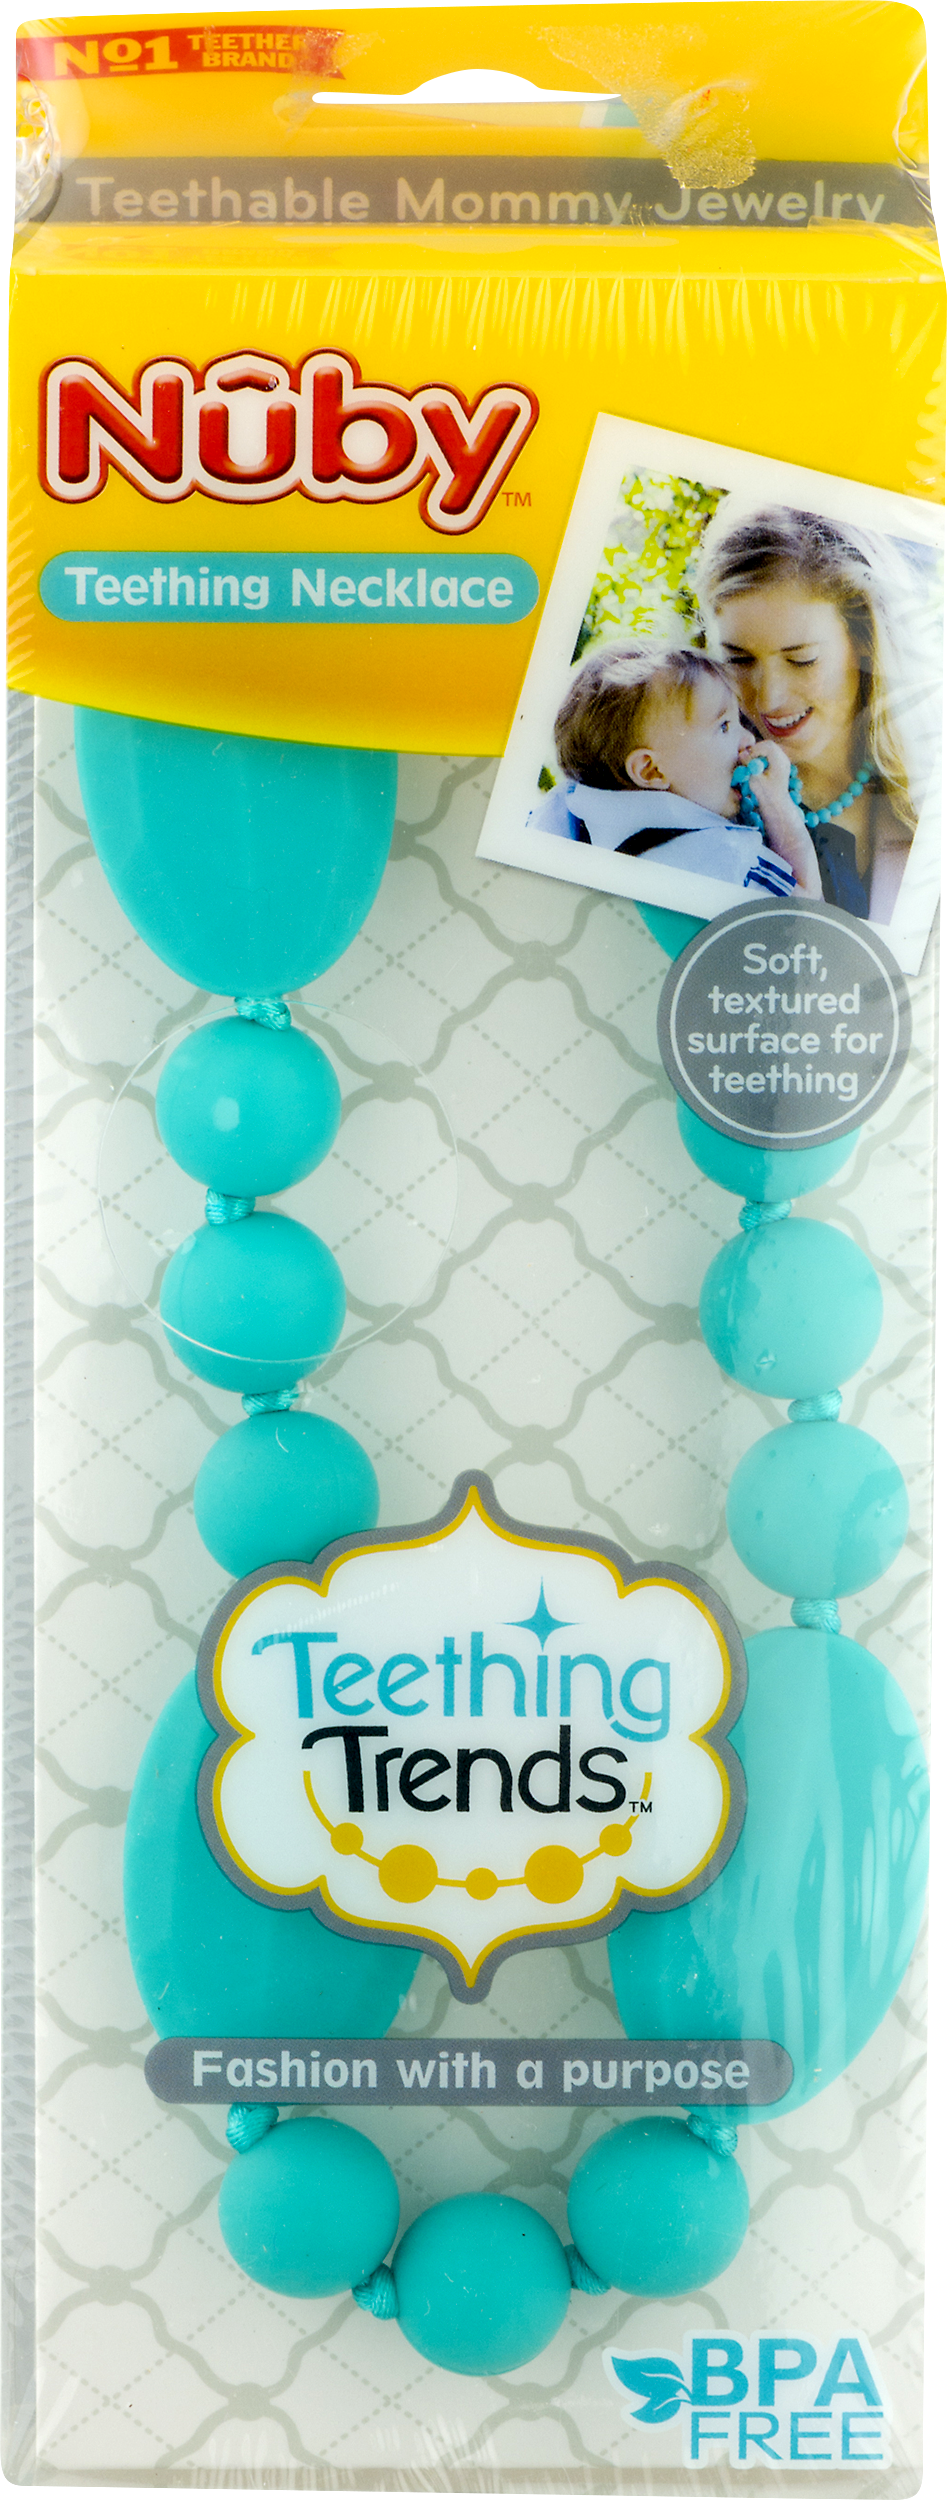 Nuby Teething Necklace Black soft surface Teething Trends For Parents BPA Free